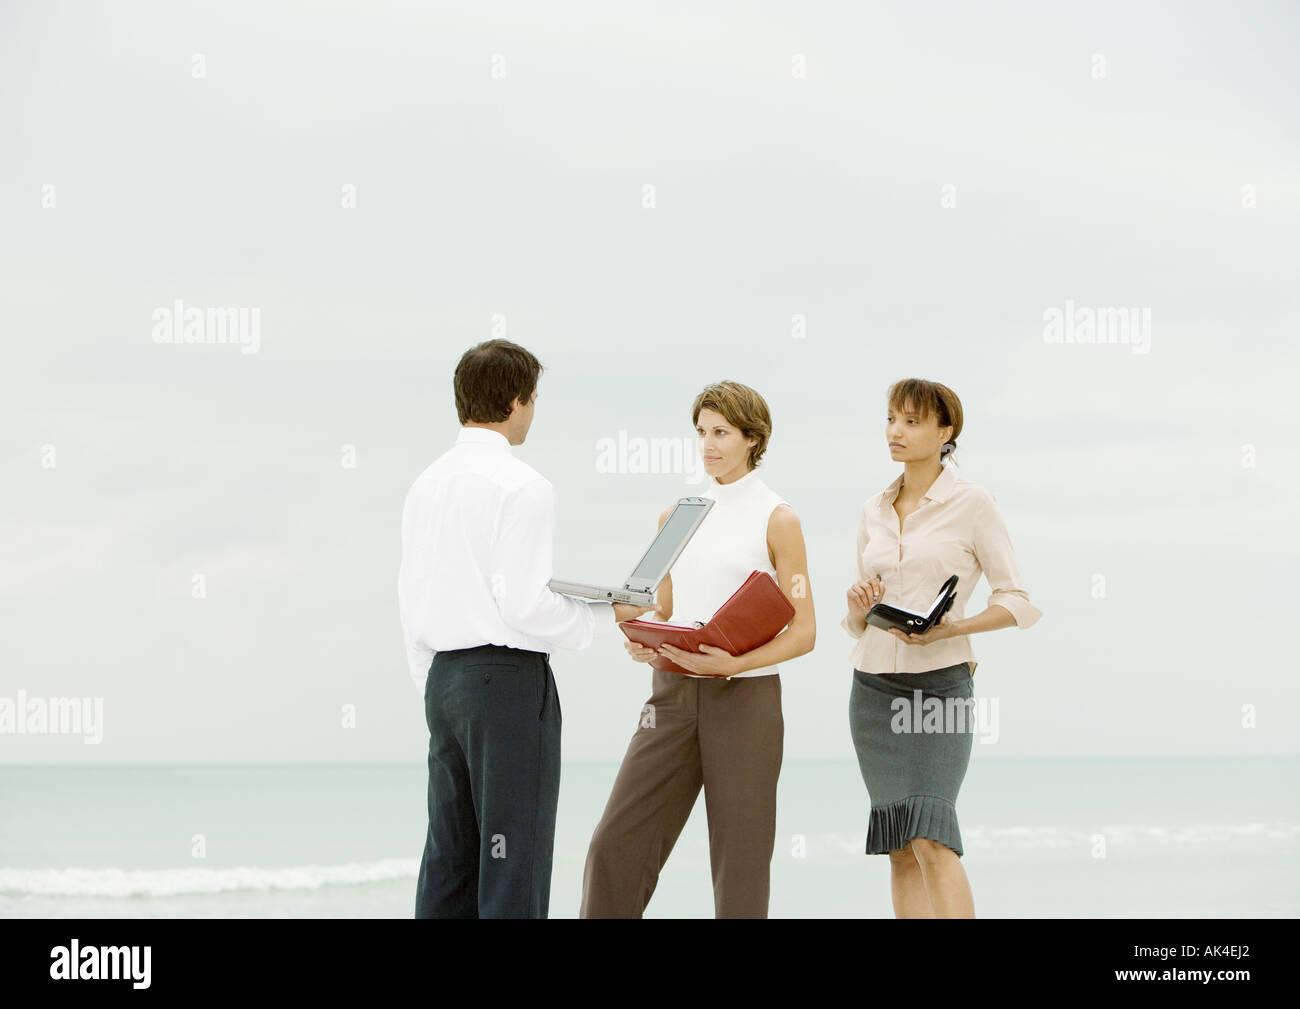 Businessman with laptop facing women with agendas, on beach Stock Photo